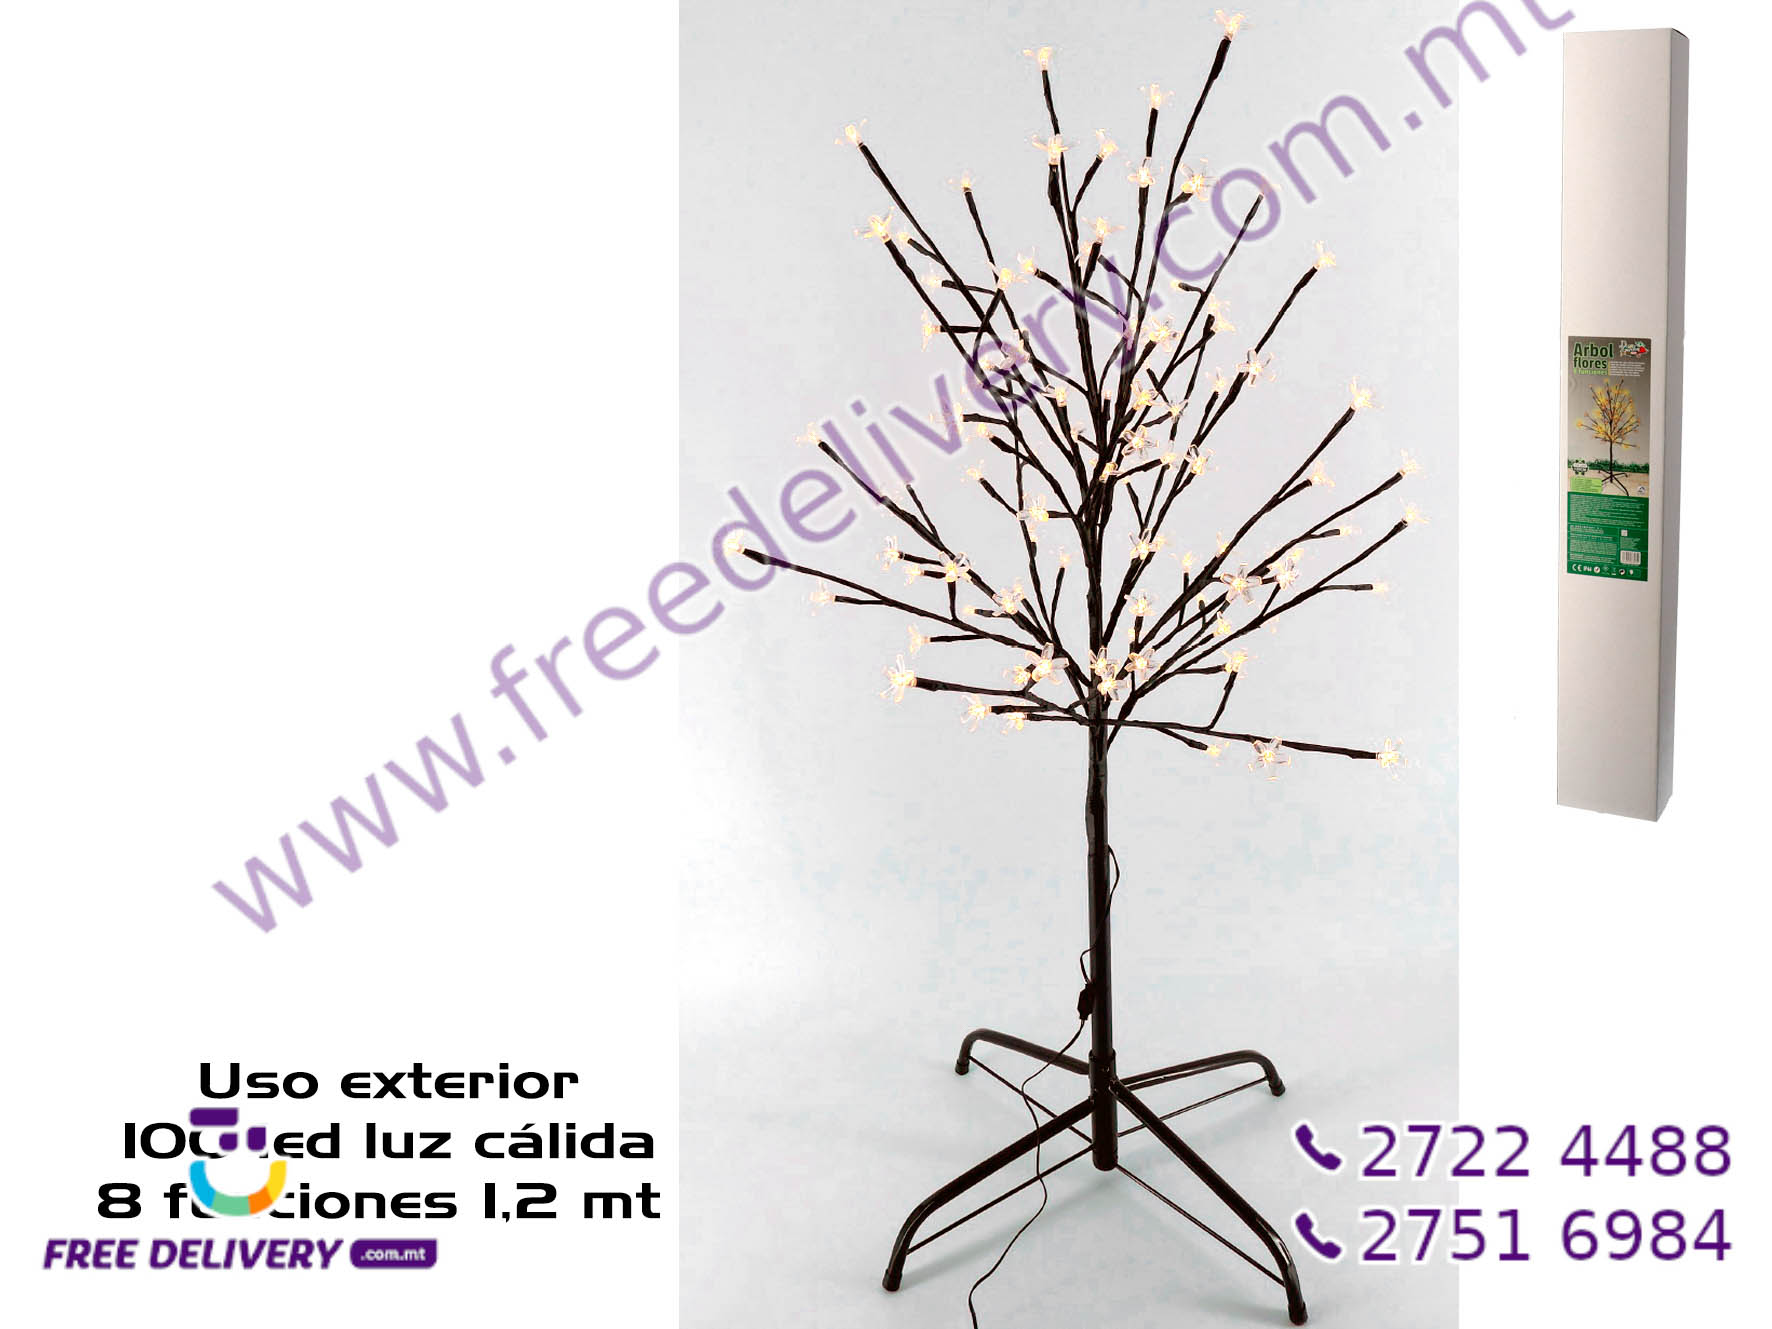 100 WARM LED TREE GE885652